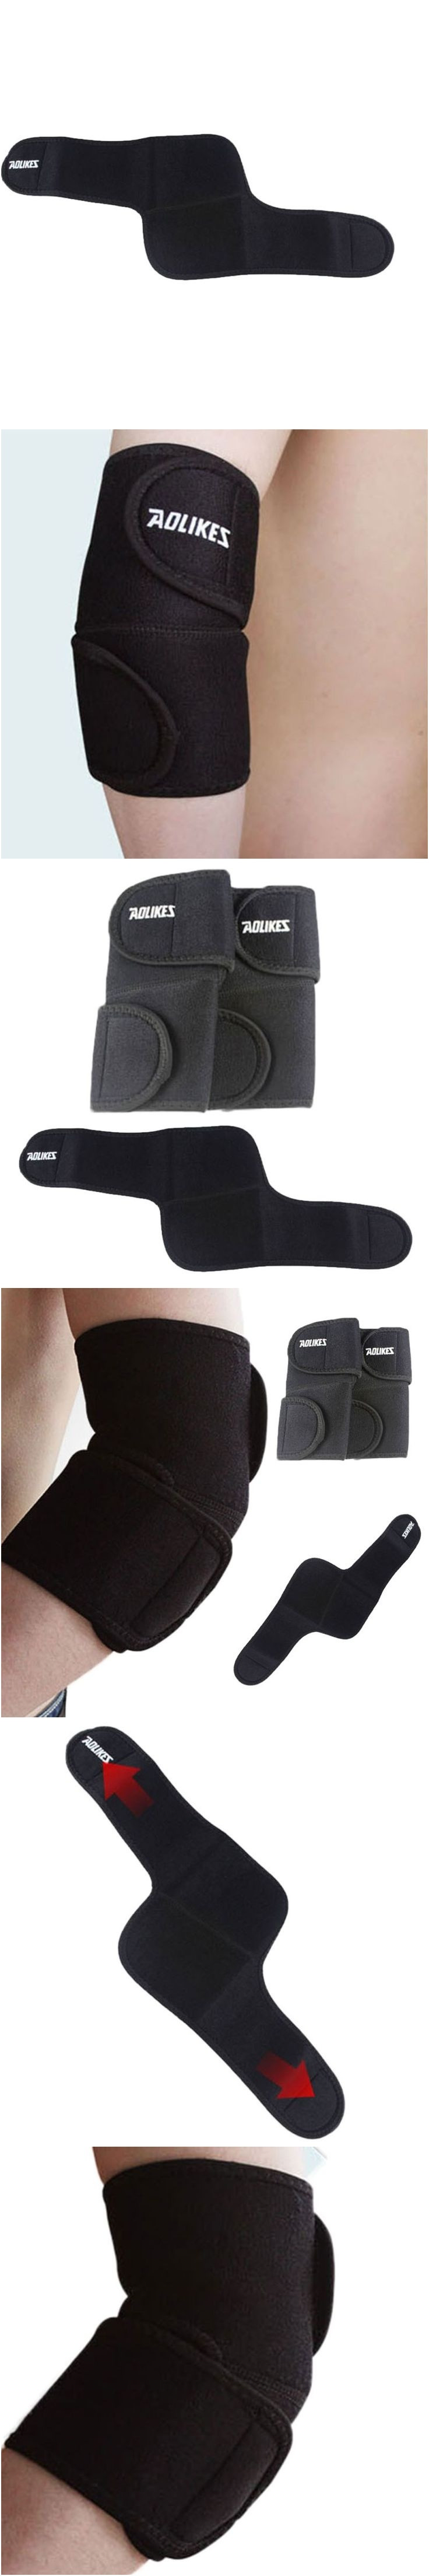 hardwood flooring knee pads of knee pads for flooring professionals inspirational best best work pertaining to knee pads for flooring professionals new mejores 73 imagenes de sport accessories en pinterest of knee